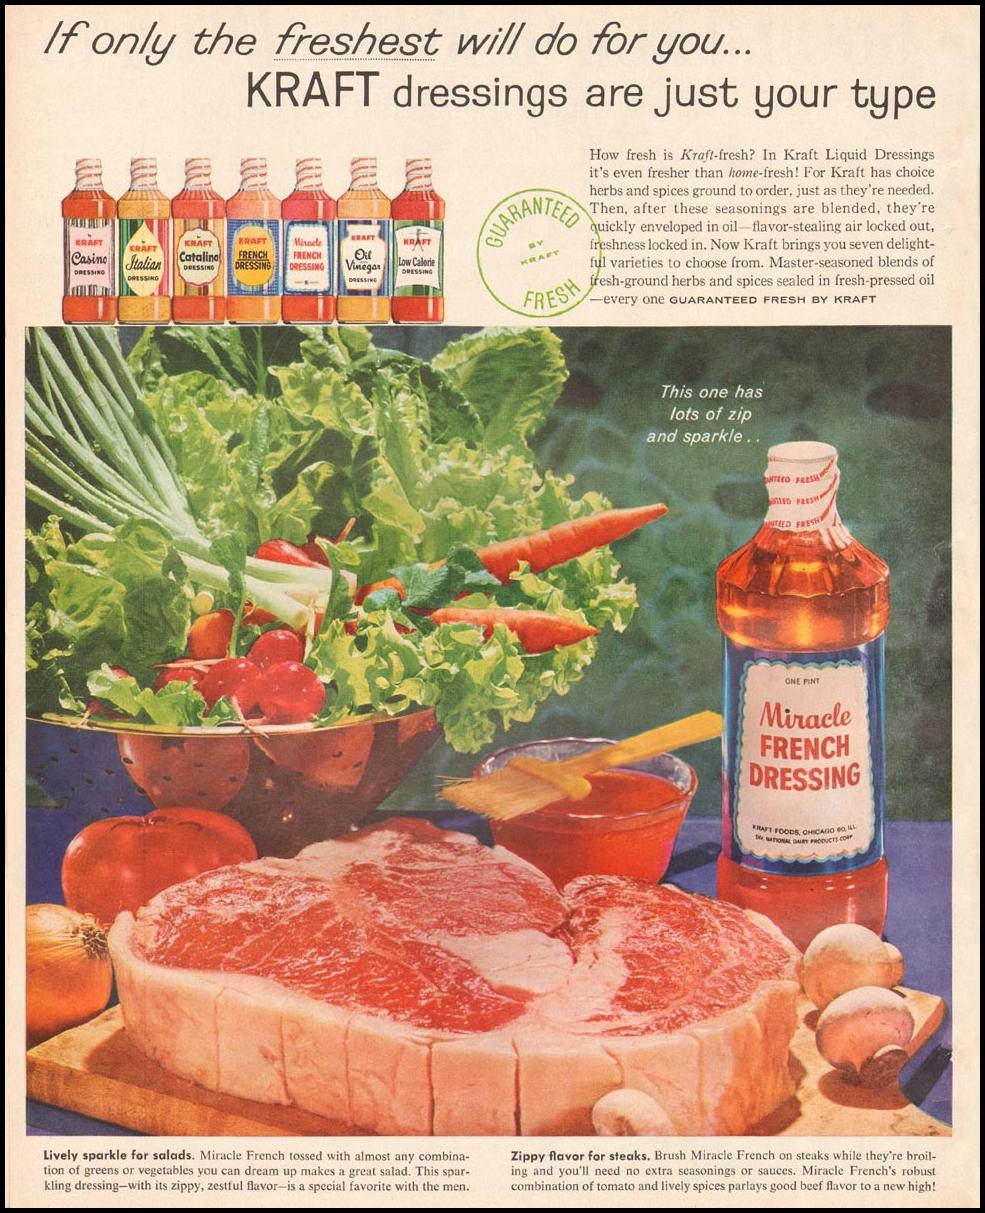 KRAFT MIRACLE FRENCH DRESSING BETTER HOMES AND GARDENS 03/01/1960